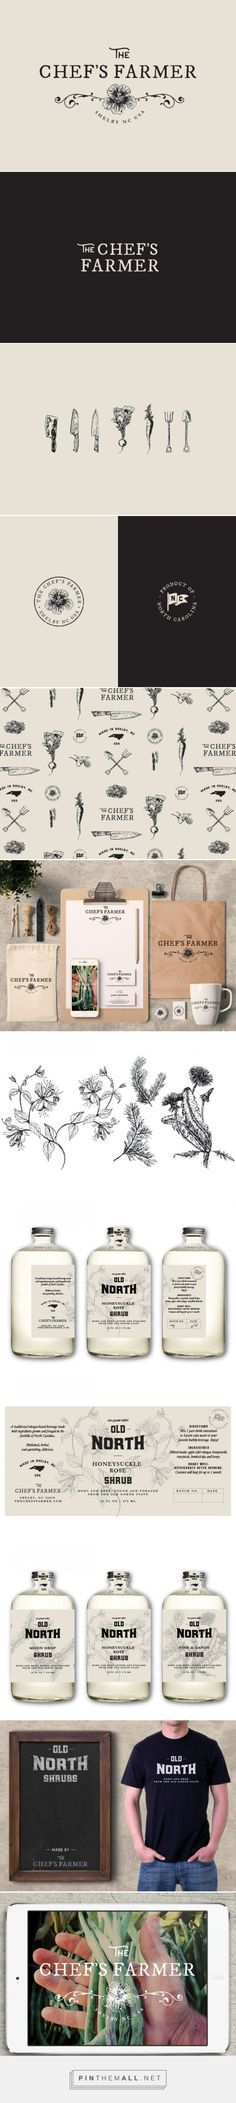 The Chef's Farmer branding, logo design, illustrations, hand lettering…